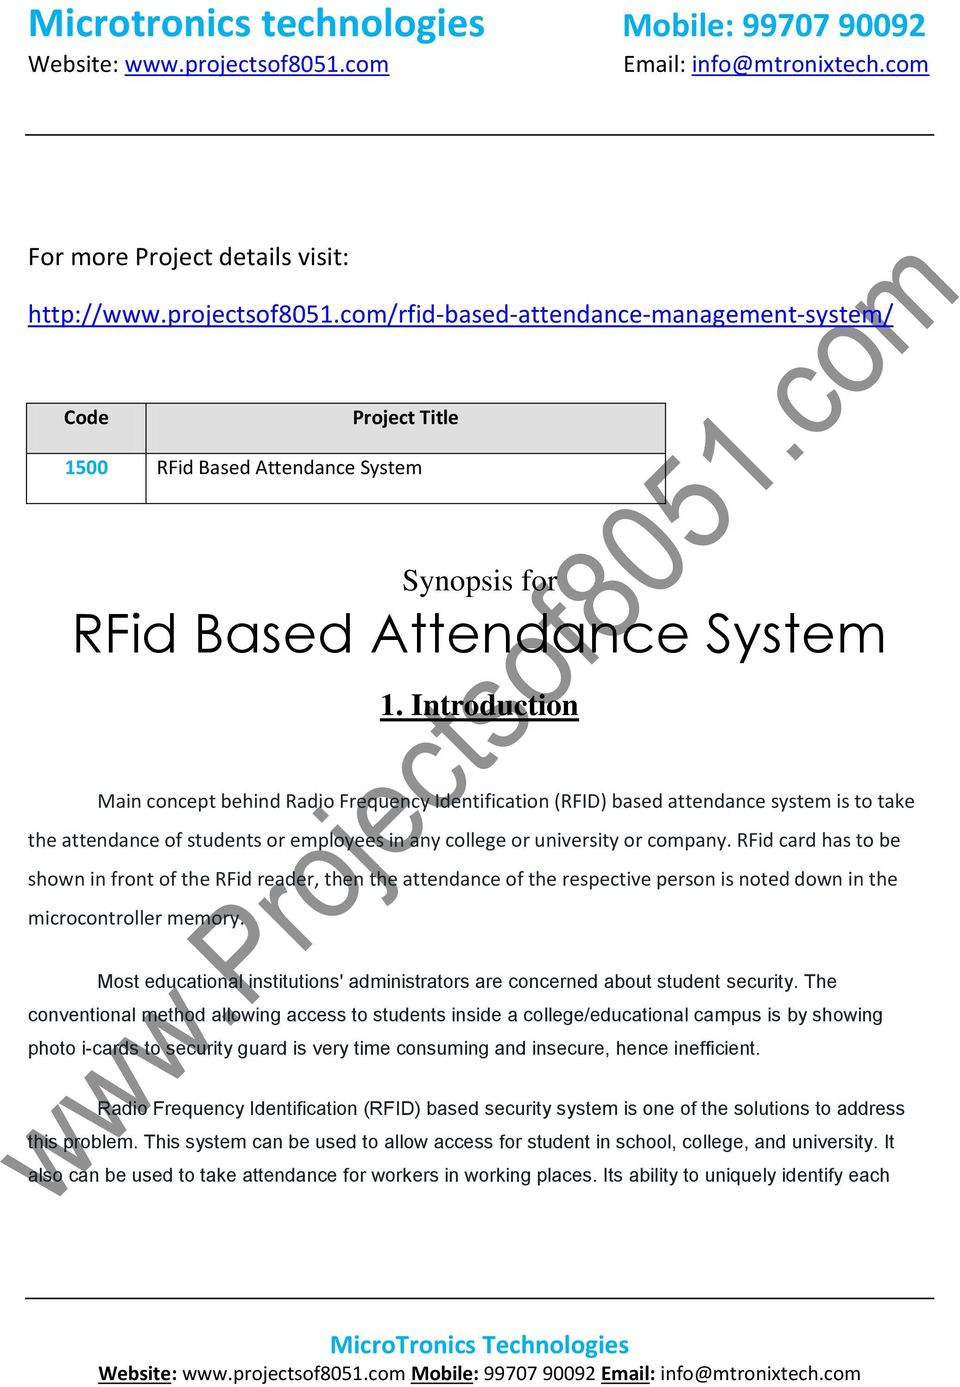 RFid card has to be shown in front of the RFid reader, then the attendance of the respective person is noted down in the microcontroller memory.